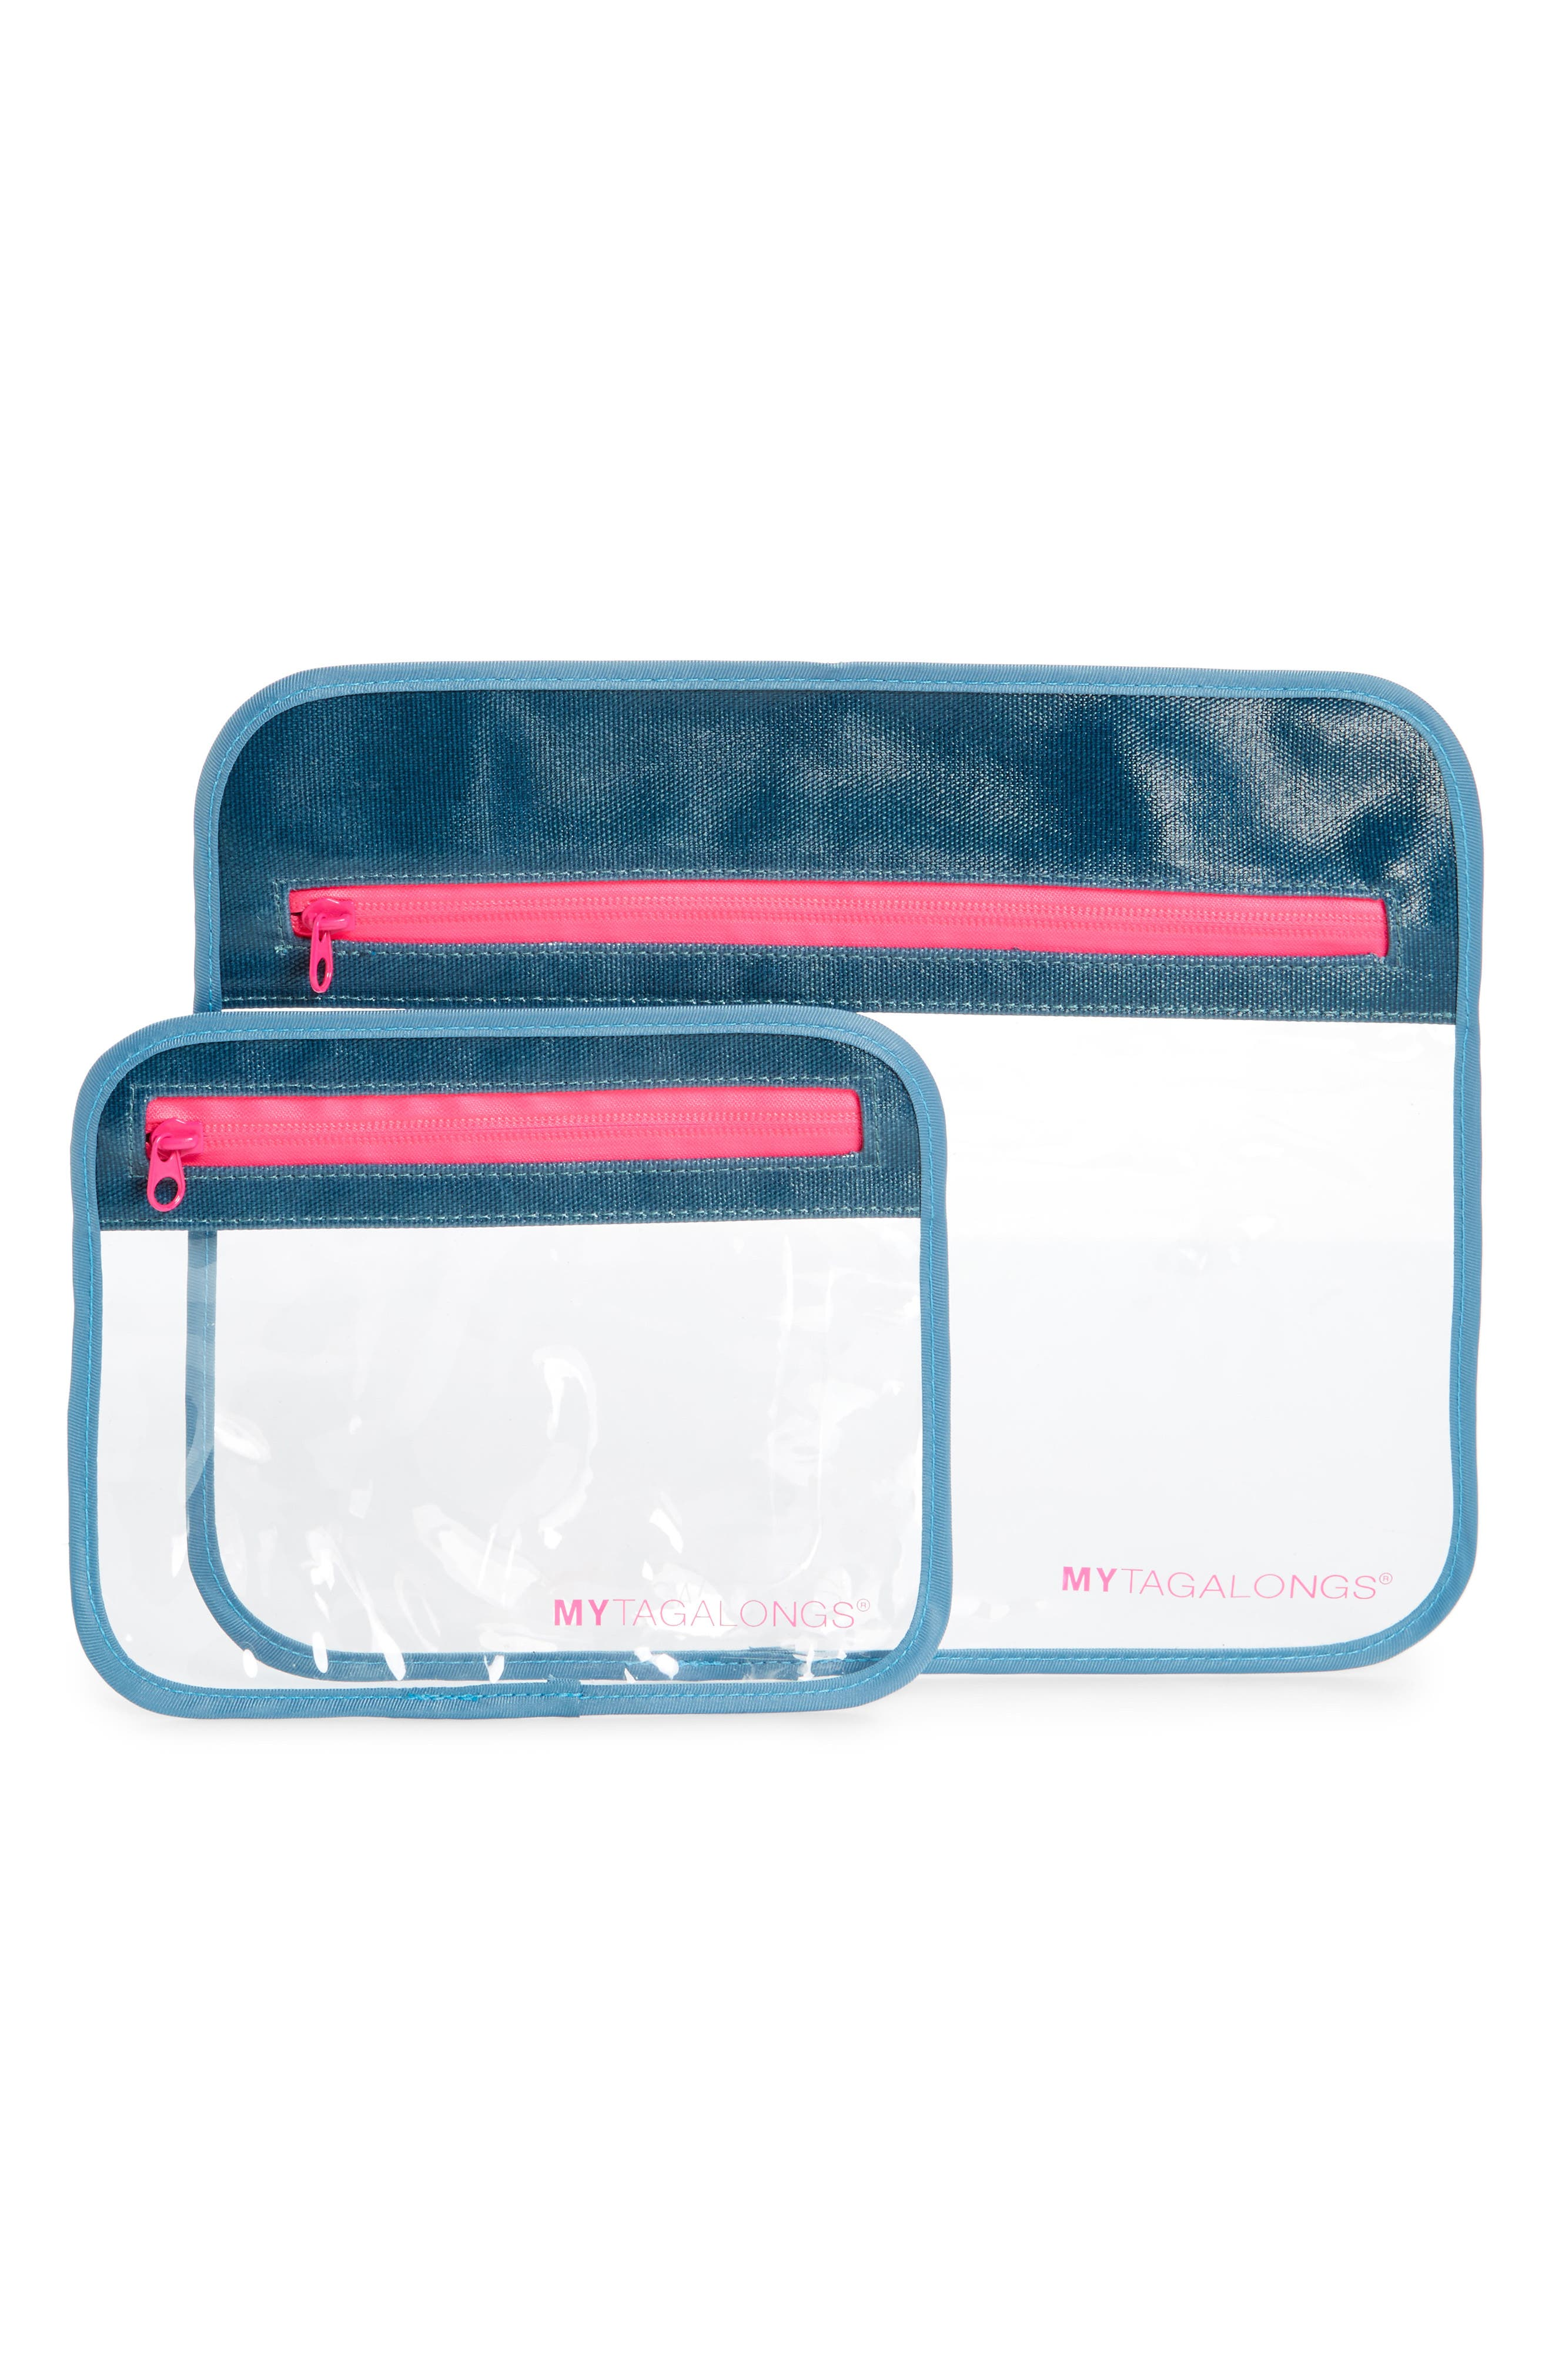 2-Piece Splash Proof Tech Pouch Set,                             Main thumbnail 1, color,